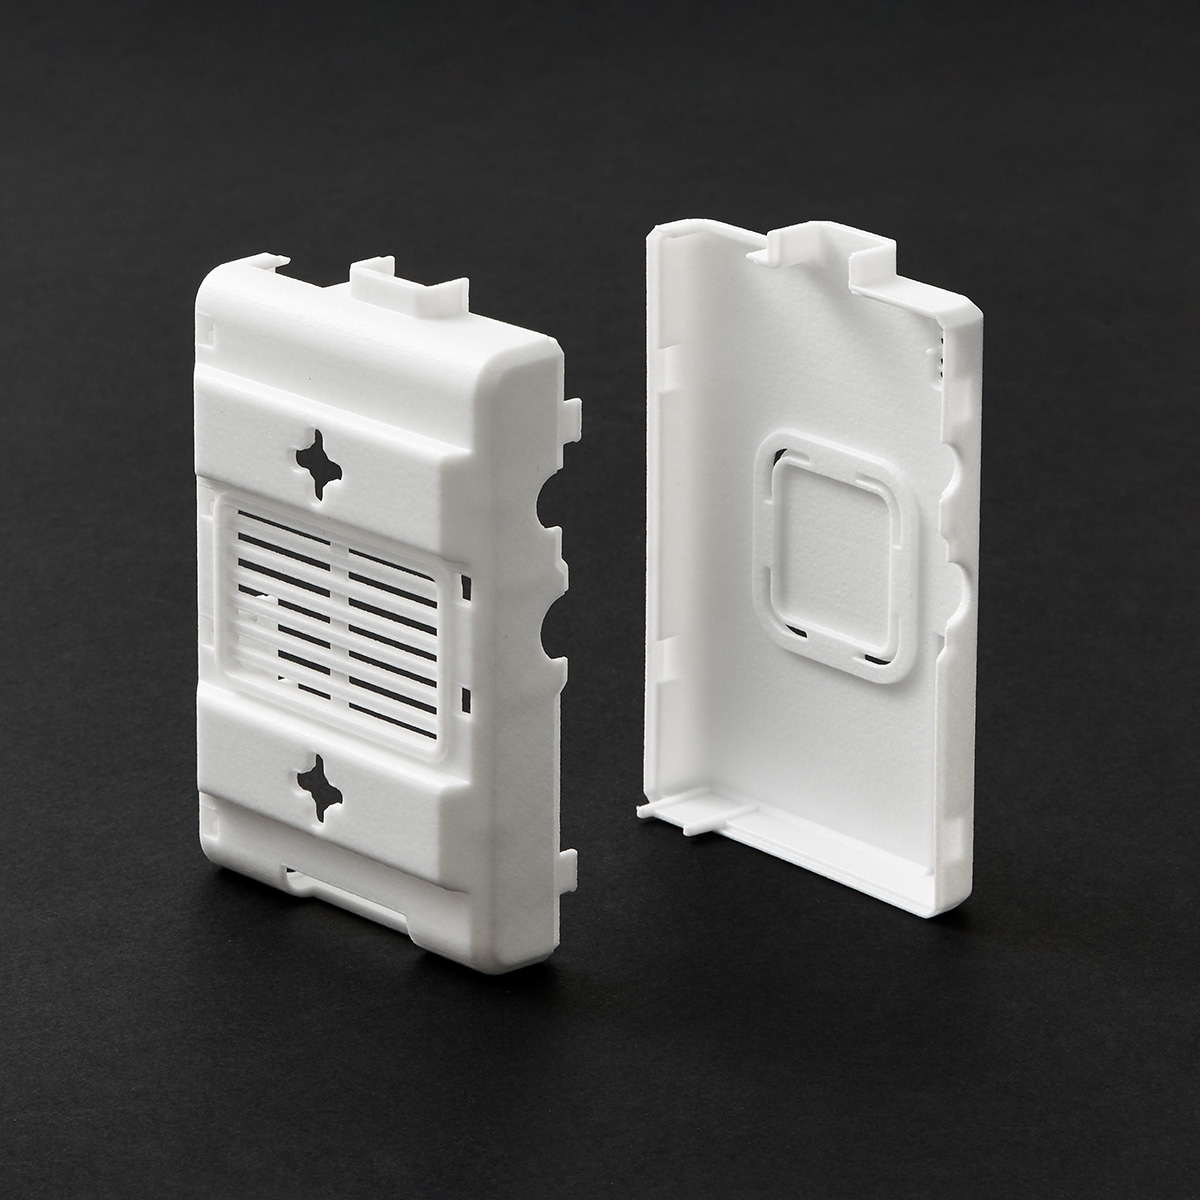 Raspberry pi case 3D printed in Accura Xtreme 200 - white plastic with smooth, glossy surface finish